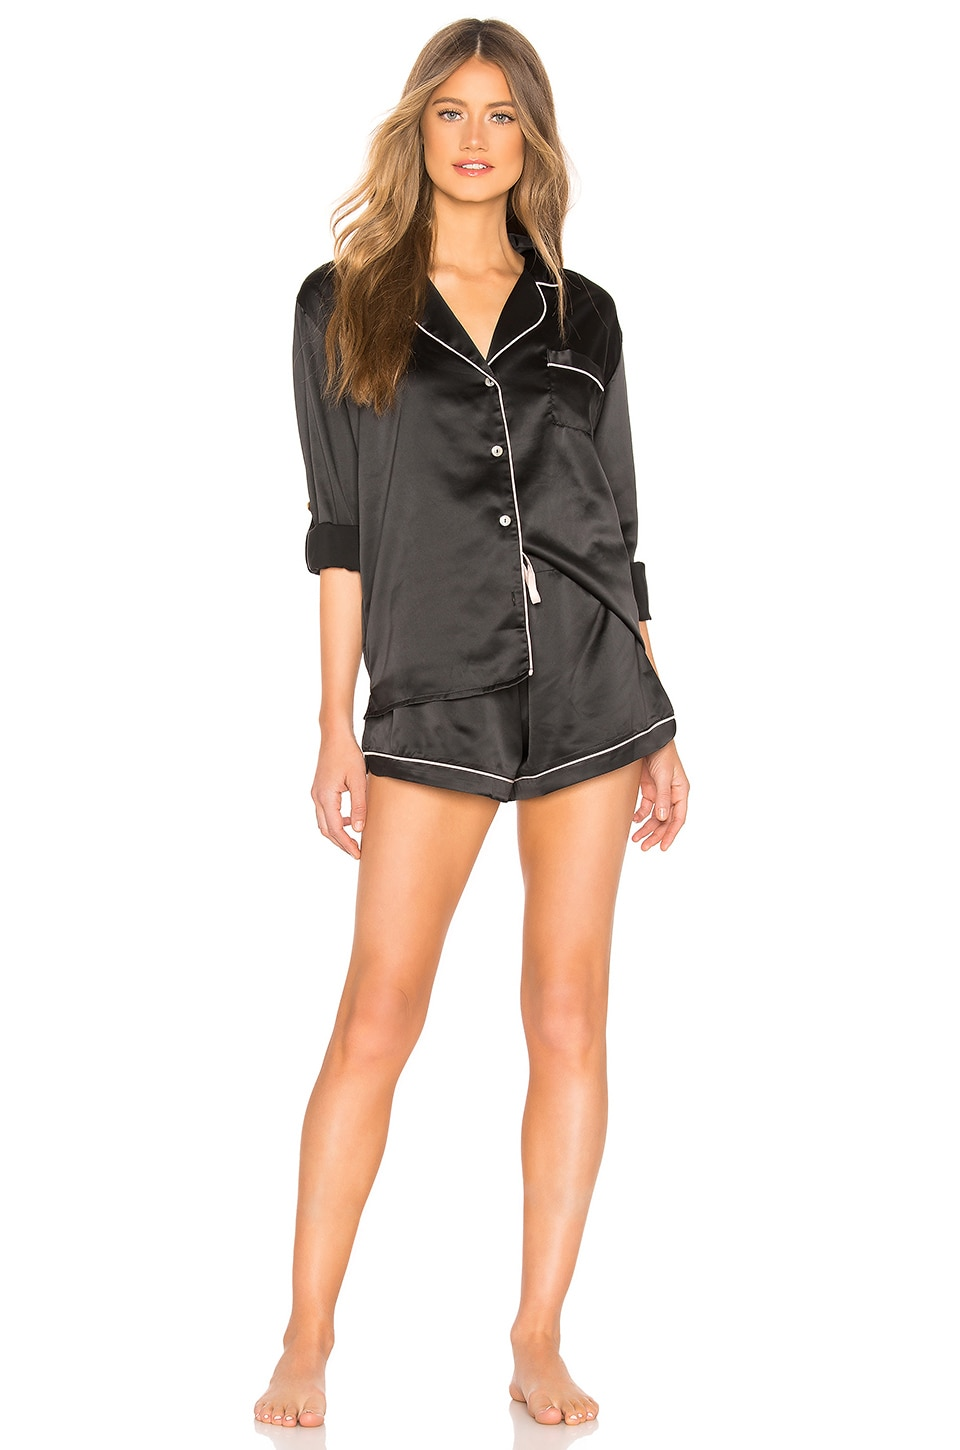 homebodii Long Piping Pajama Set in Black